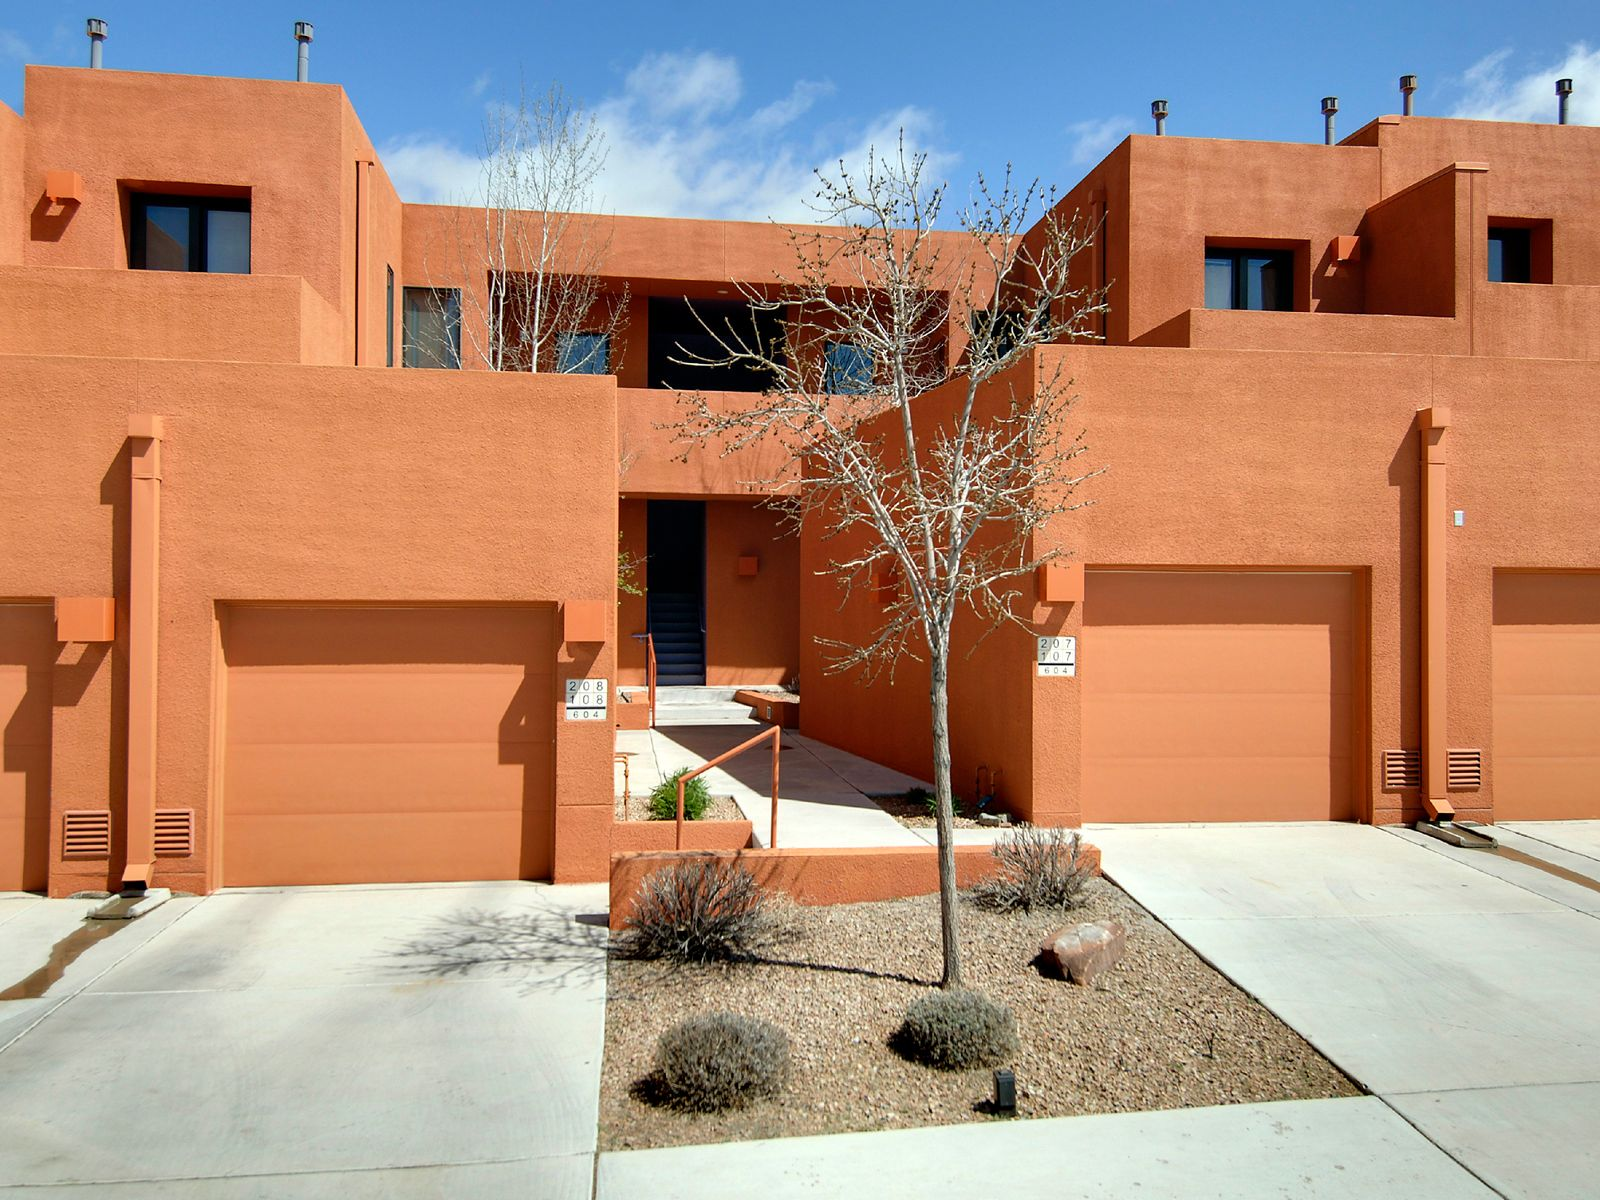 604 Avenida Villa Hermosa #107, Santa Fe NM Condominium - Santa Fe Real Estate